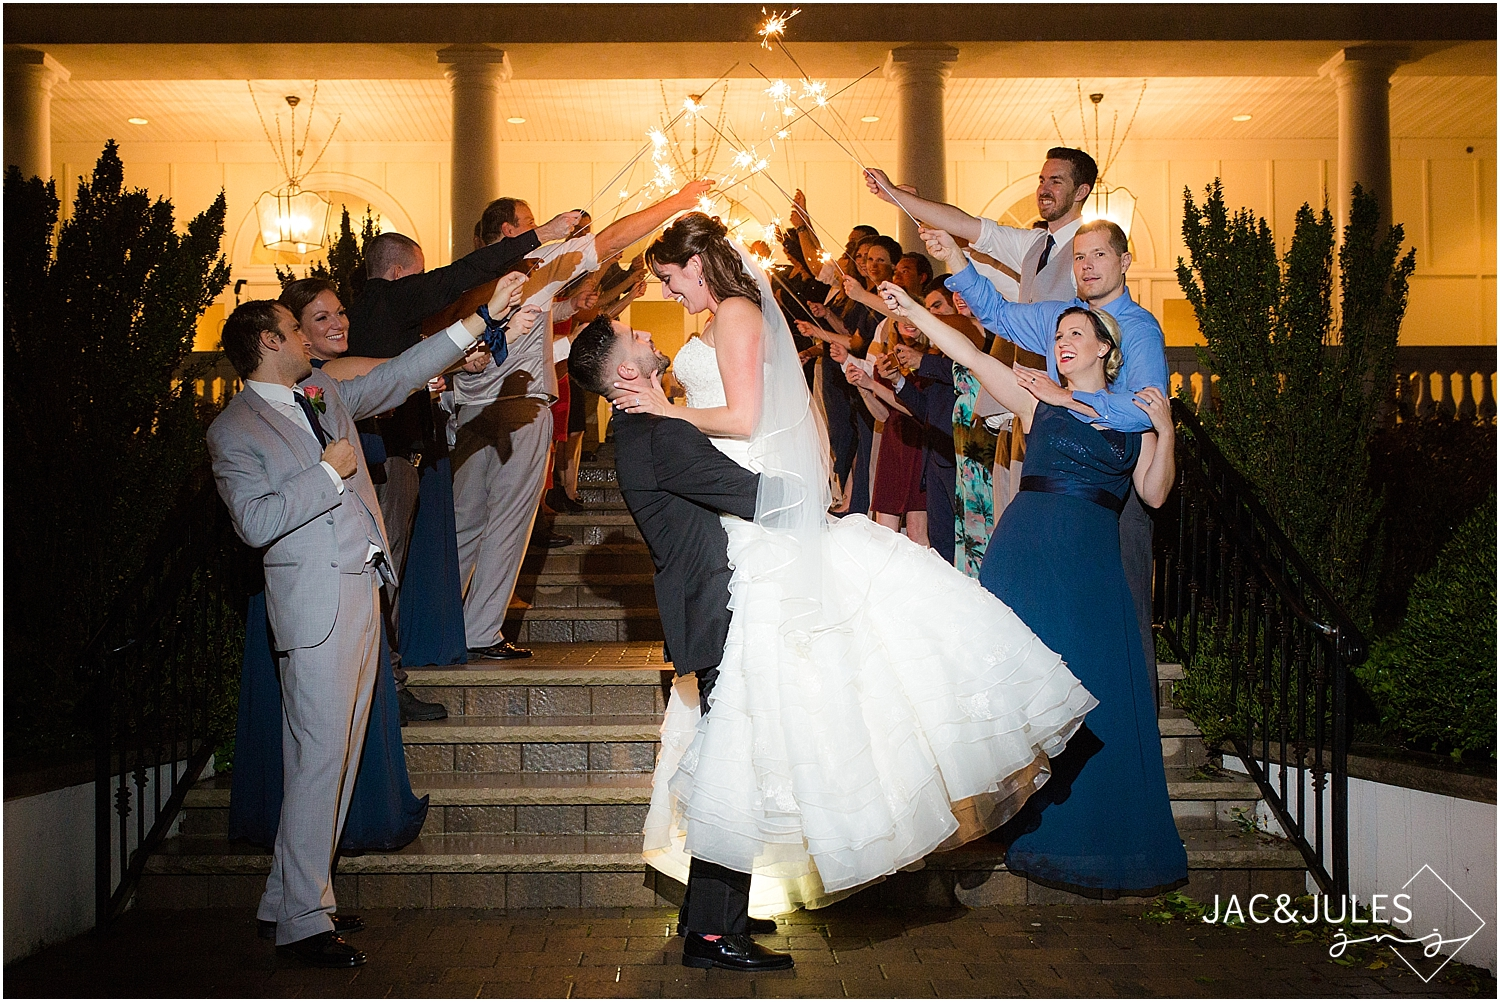 jacnjules photograph a sparkler exit at a wedding at Stockton at Seaview in Galloway, NJ